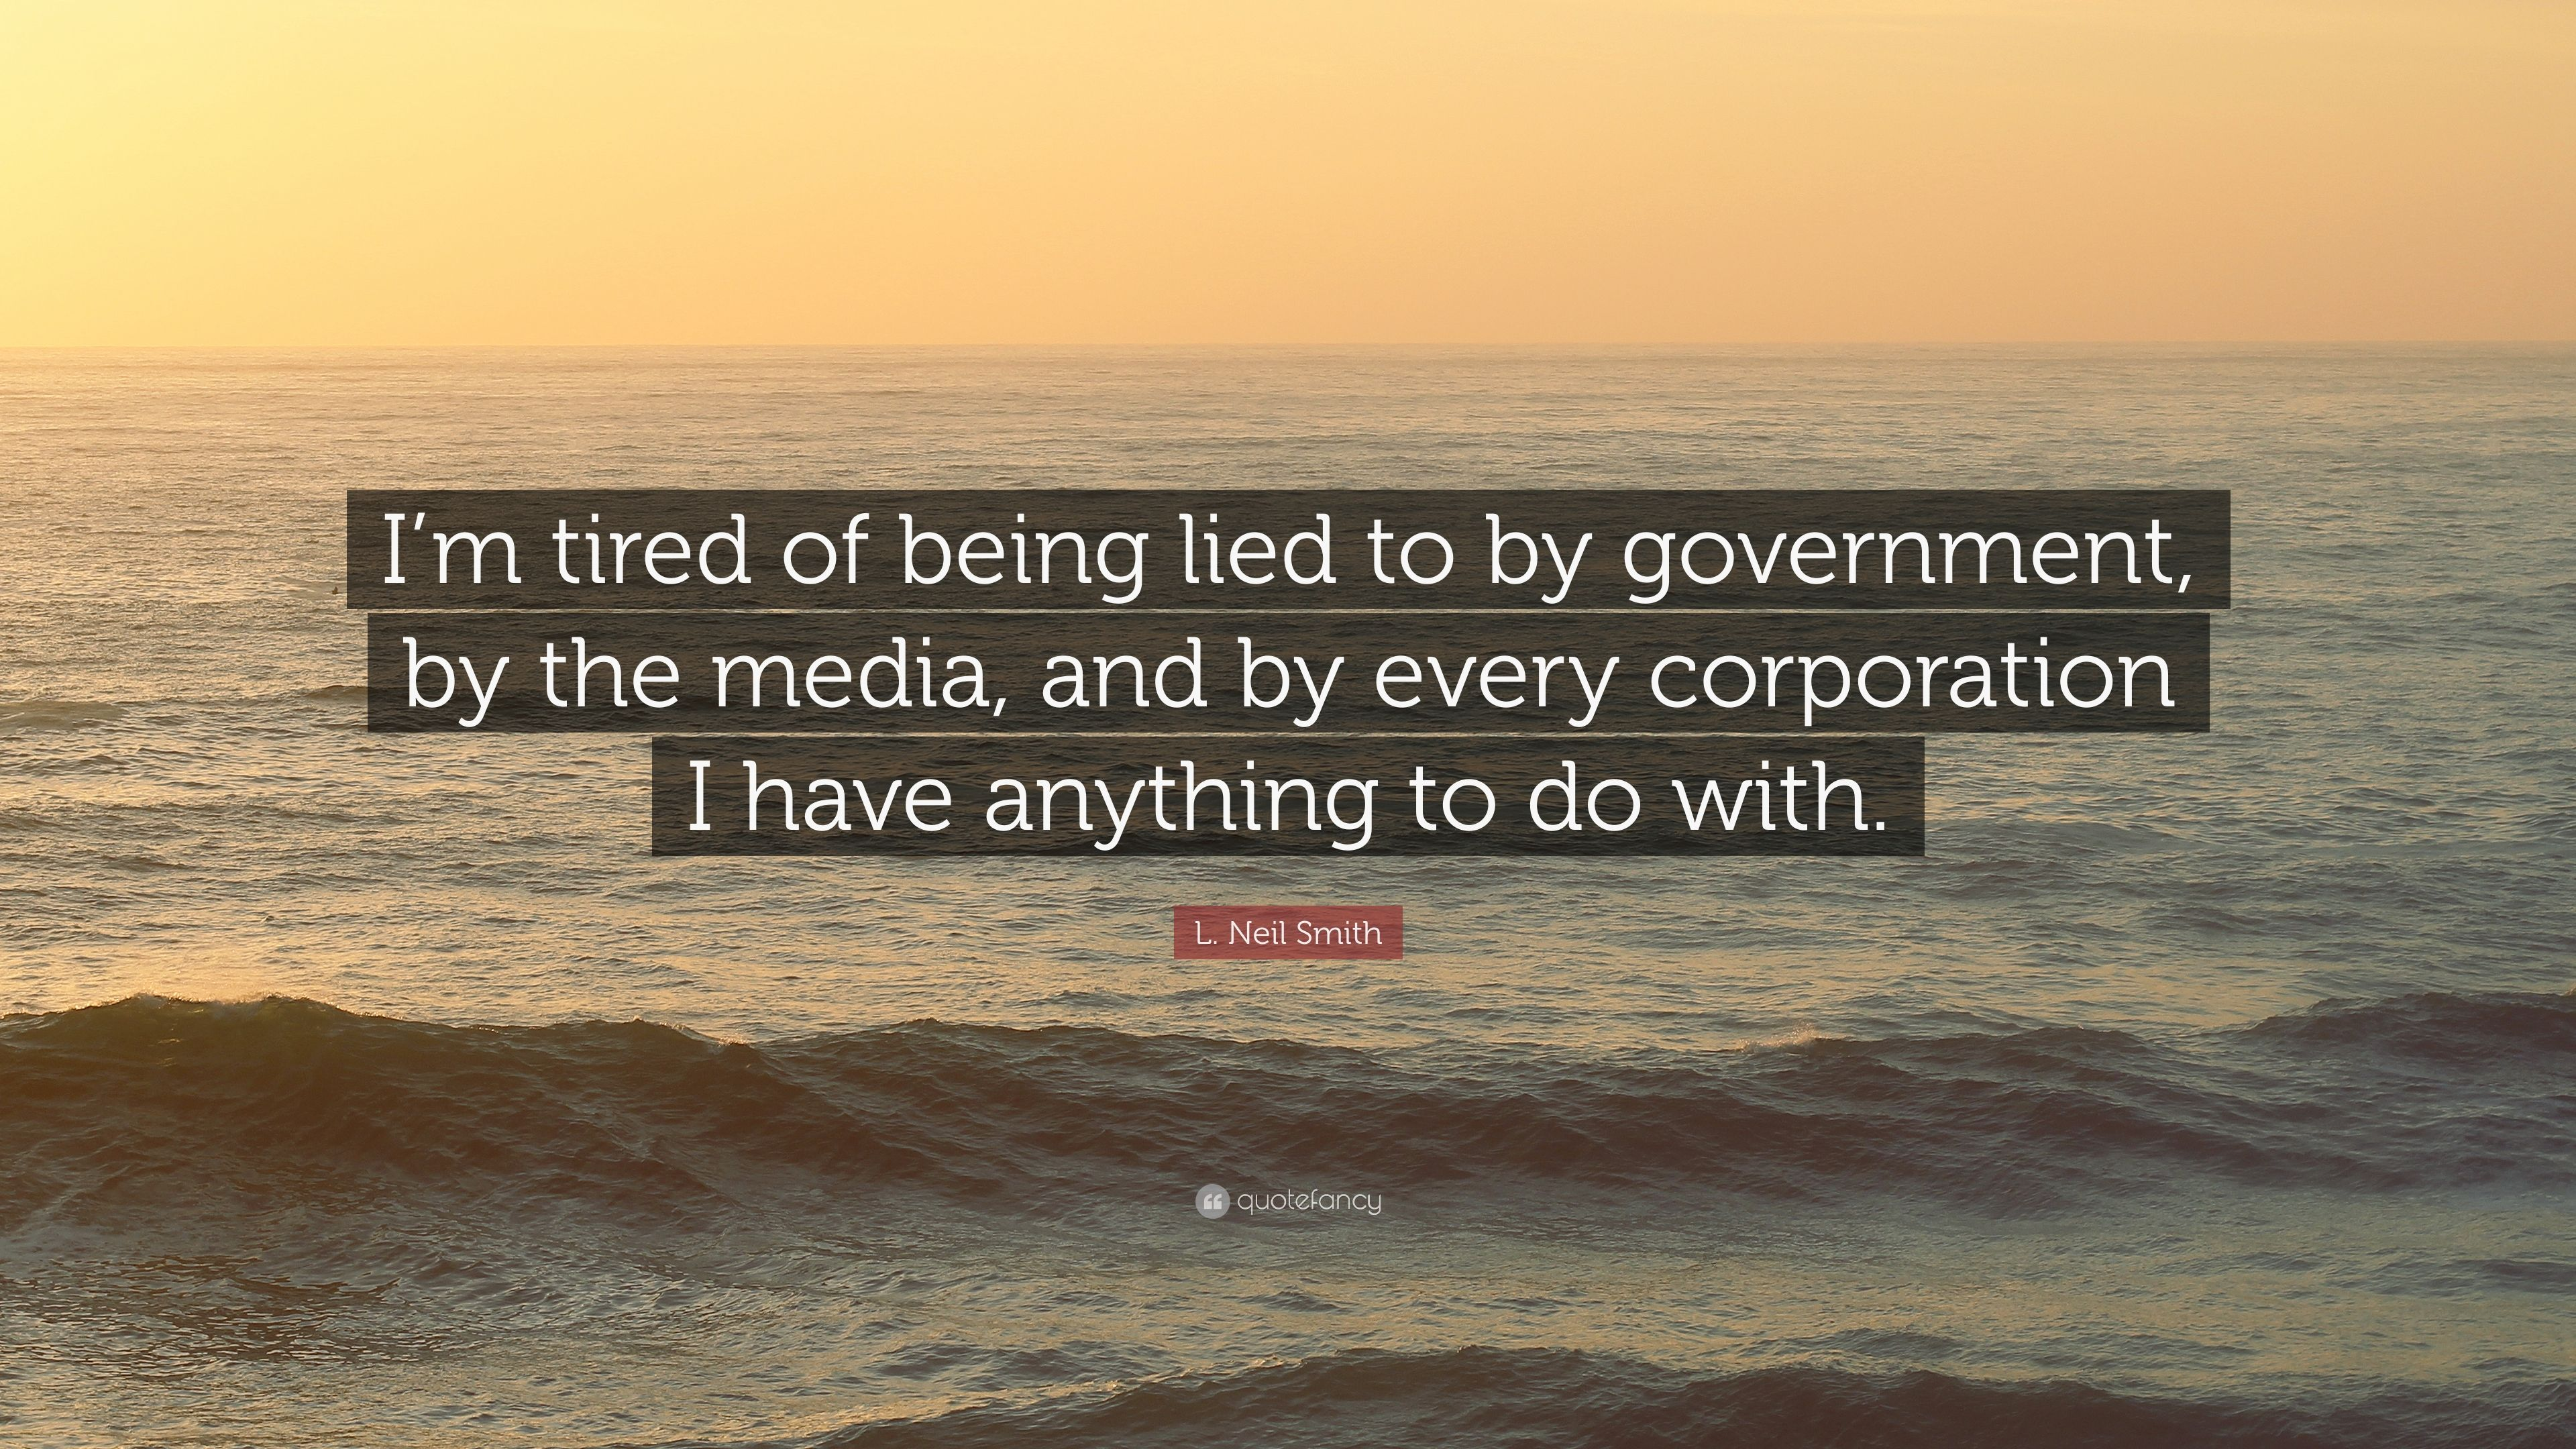 L. Neil Smith Quote: Im tired of being lied to by